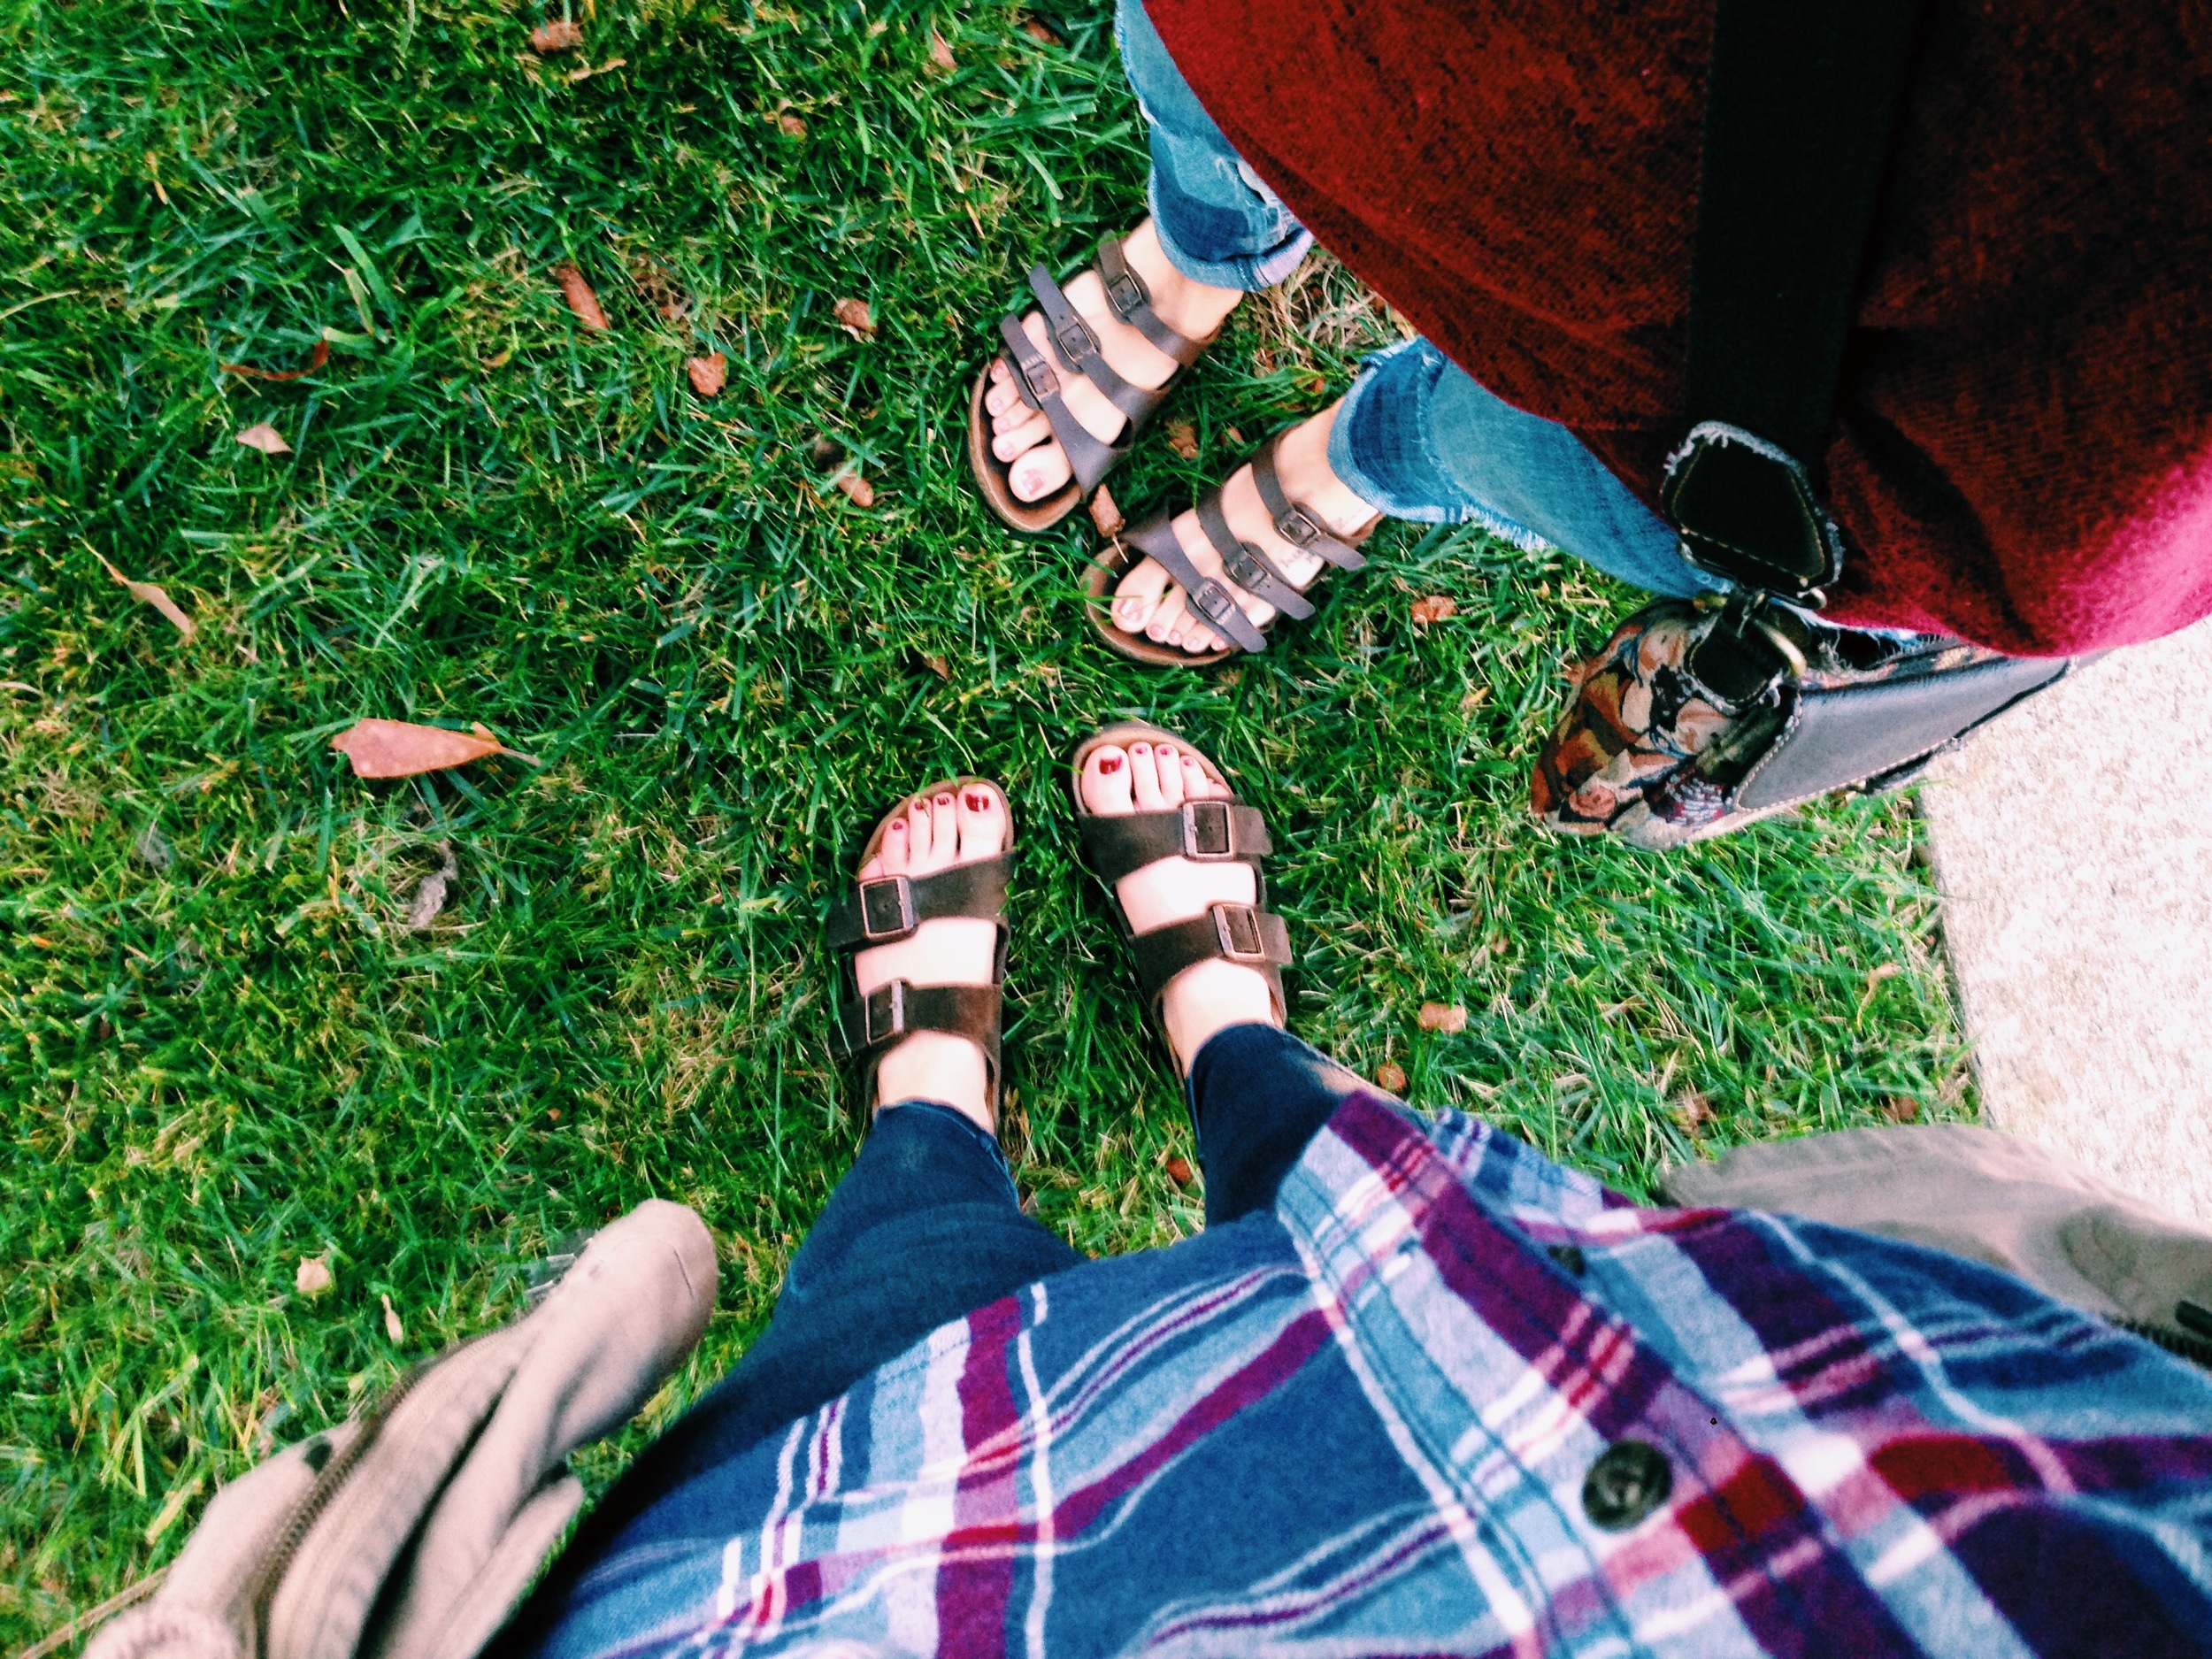 shoutout my iPhone and Alyssa Dickinson's toes and also Birkenstock if you would like to sponsor me pls let me know